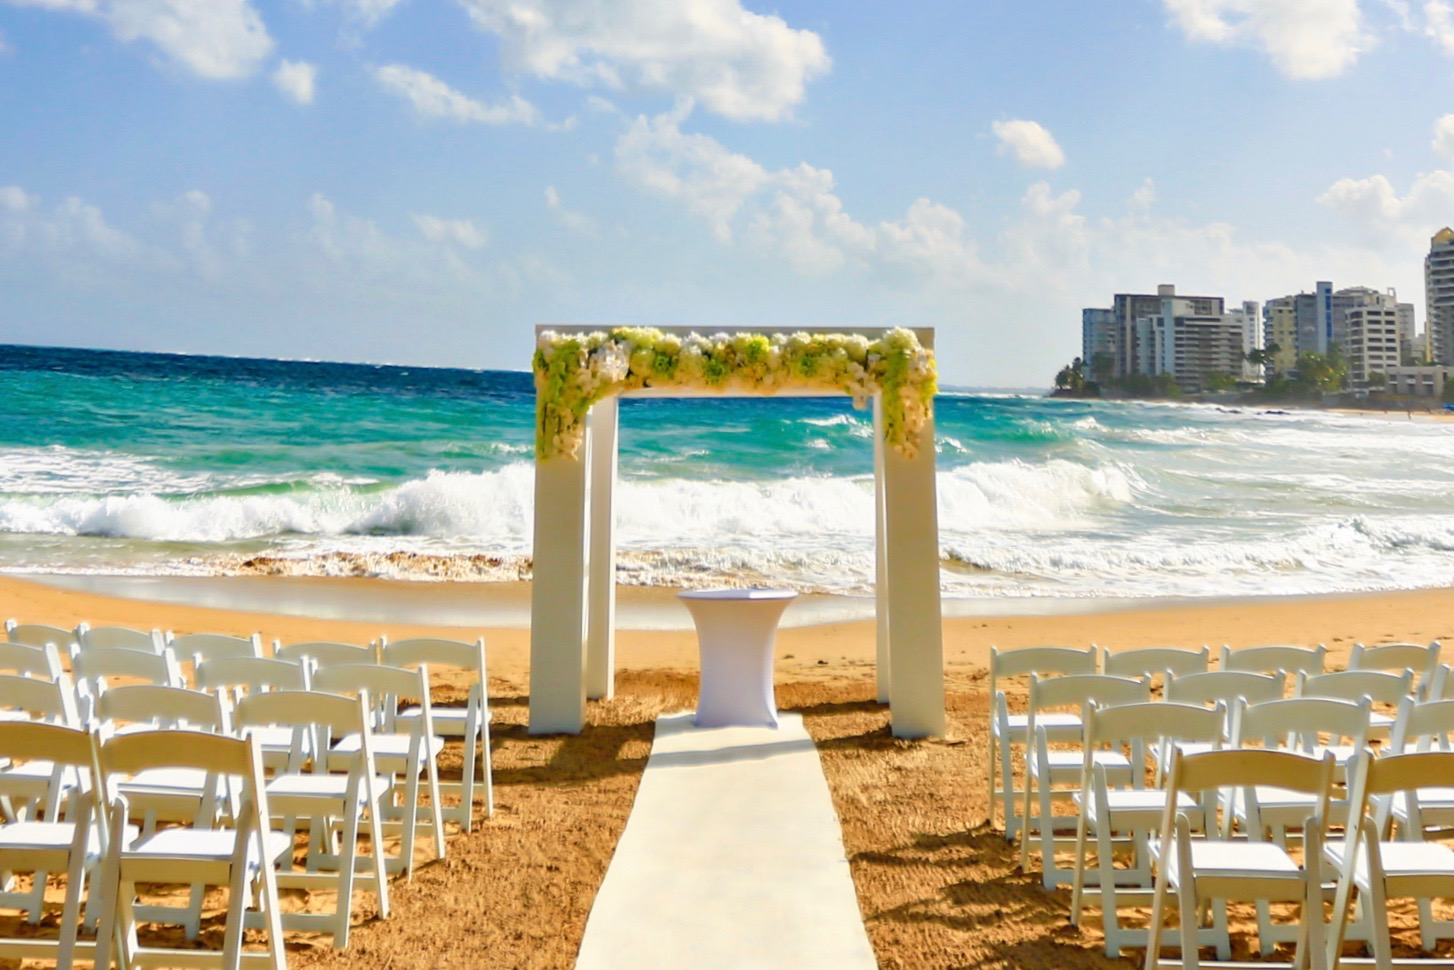 The beautiful beaches of Puerto Rico are the perfect venue for a Destination Wedding.   Contact us   to learn how we can help make your event a memorable one!